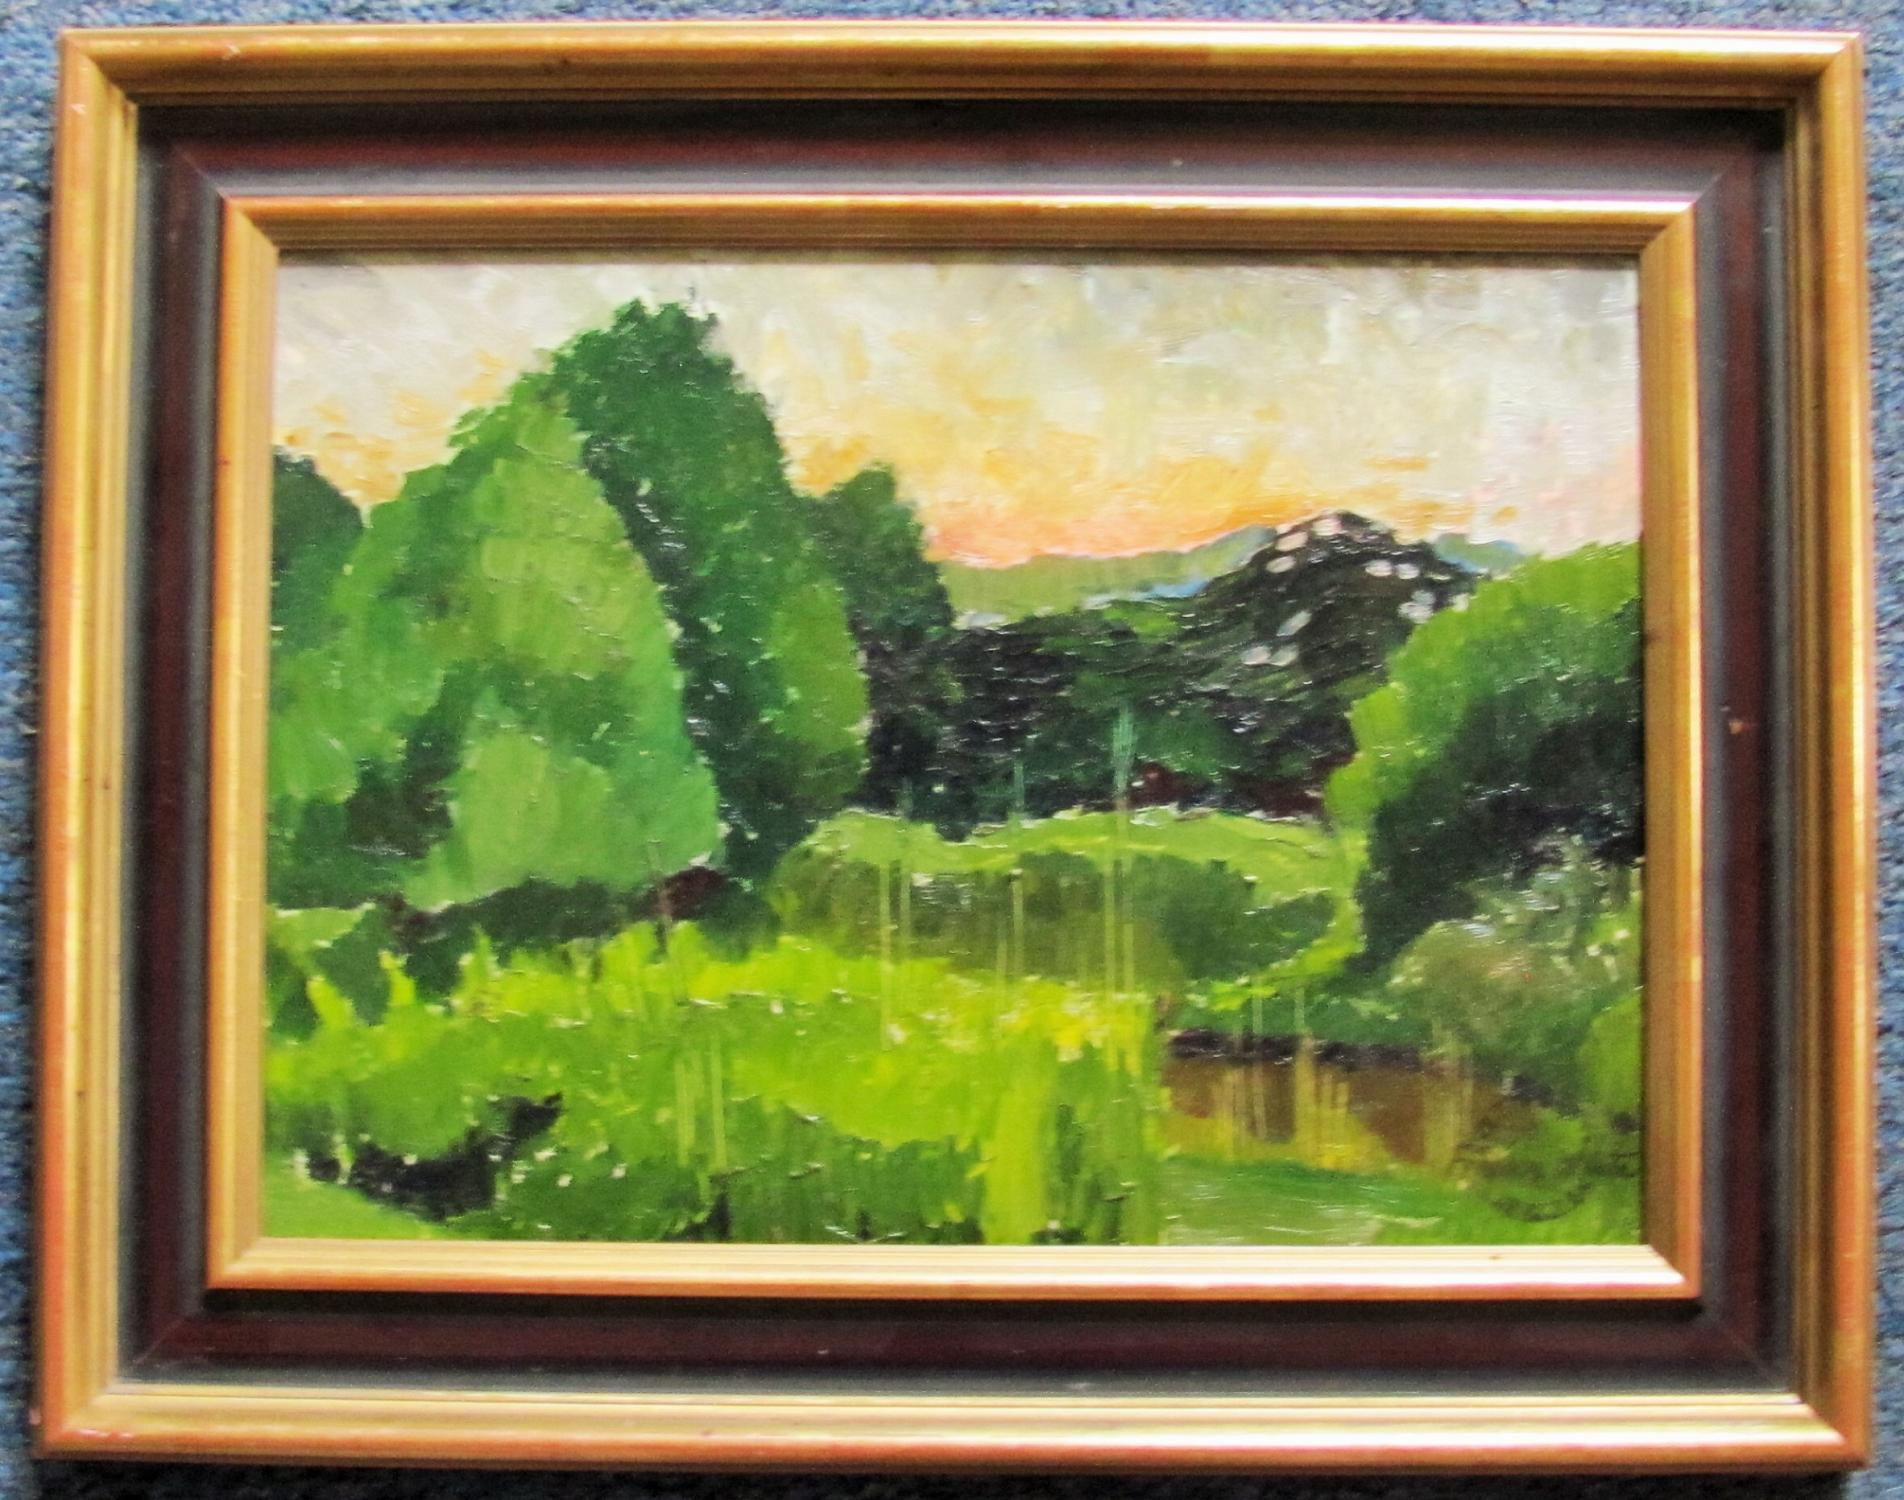 GREEN_VALLEY_-_ORIGINAL_OIL_PAINTING_FRANKLIN_WHITE_[Near_Fine]